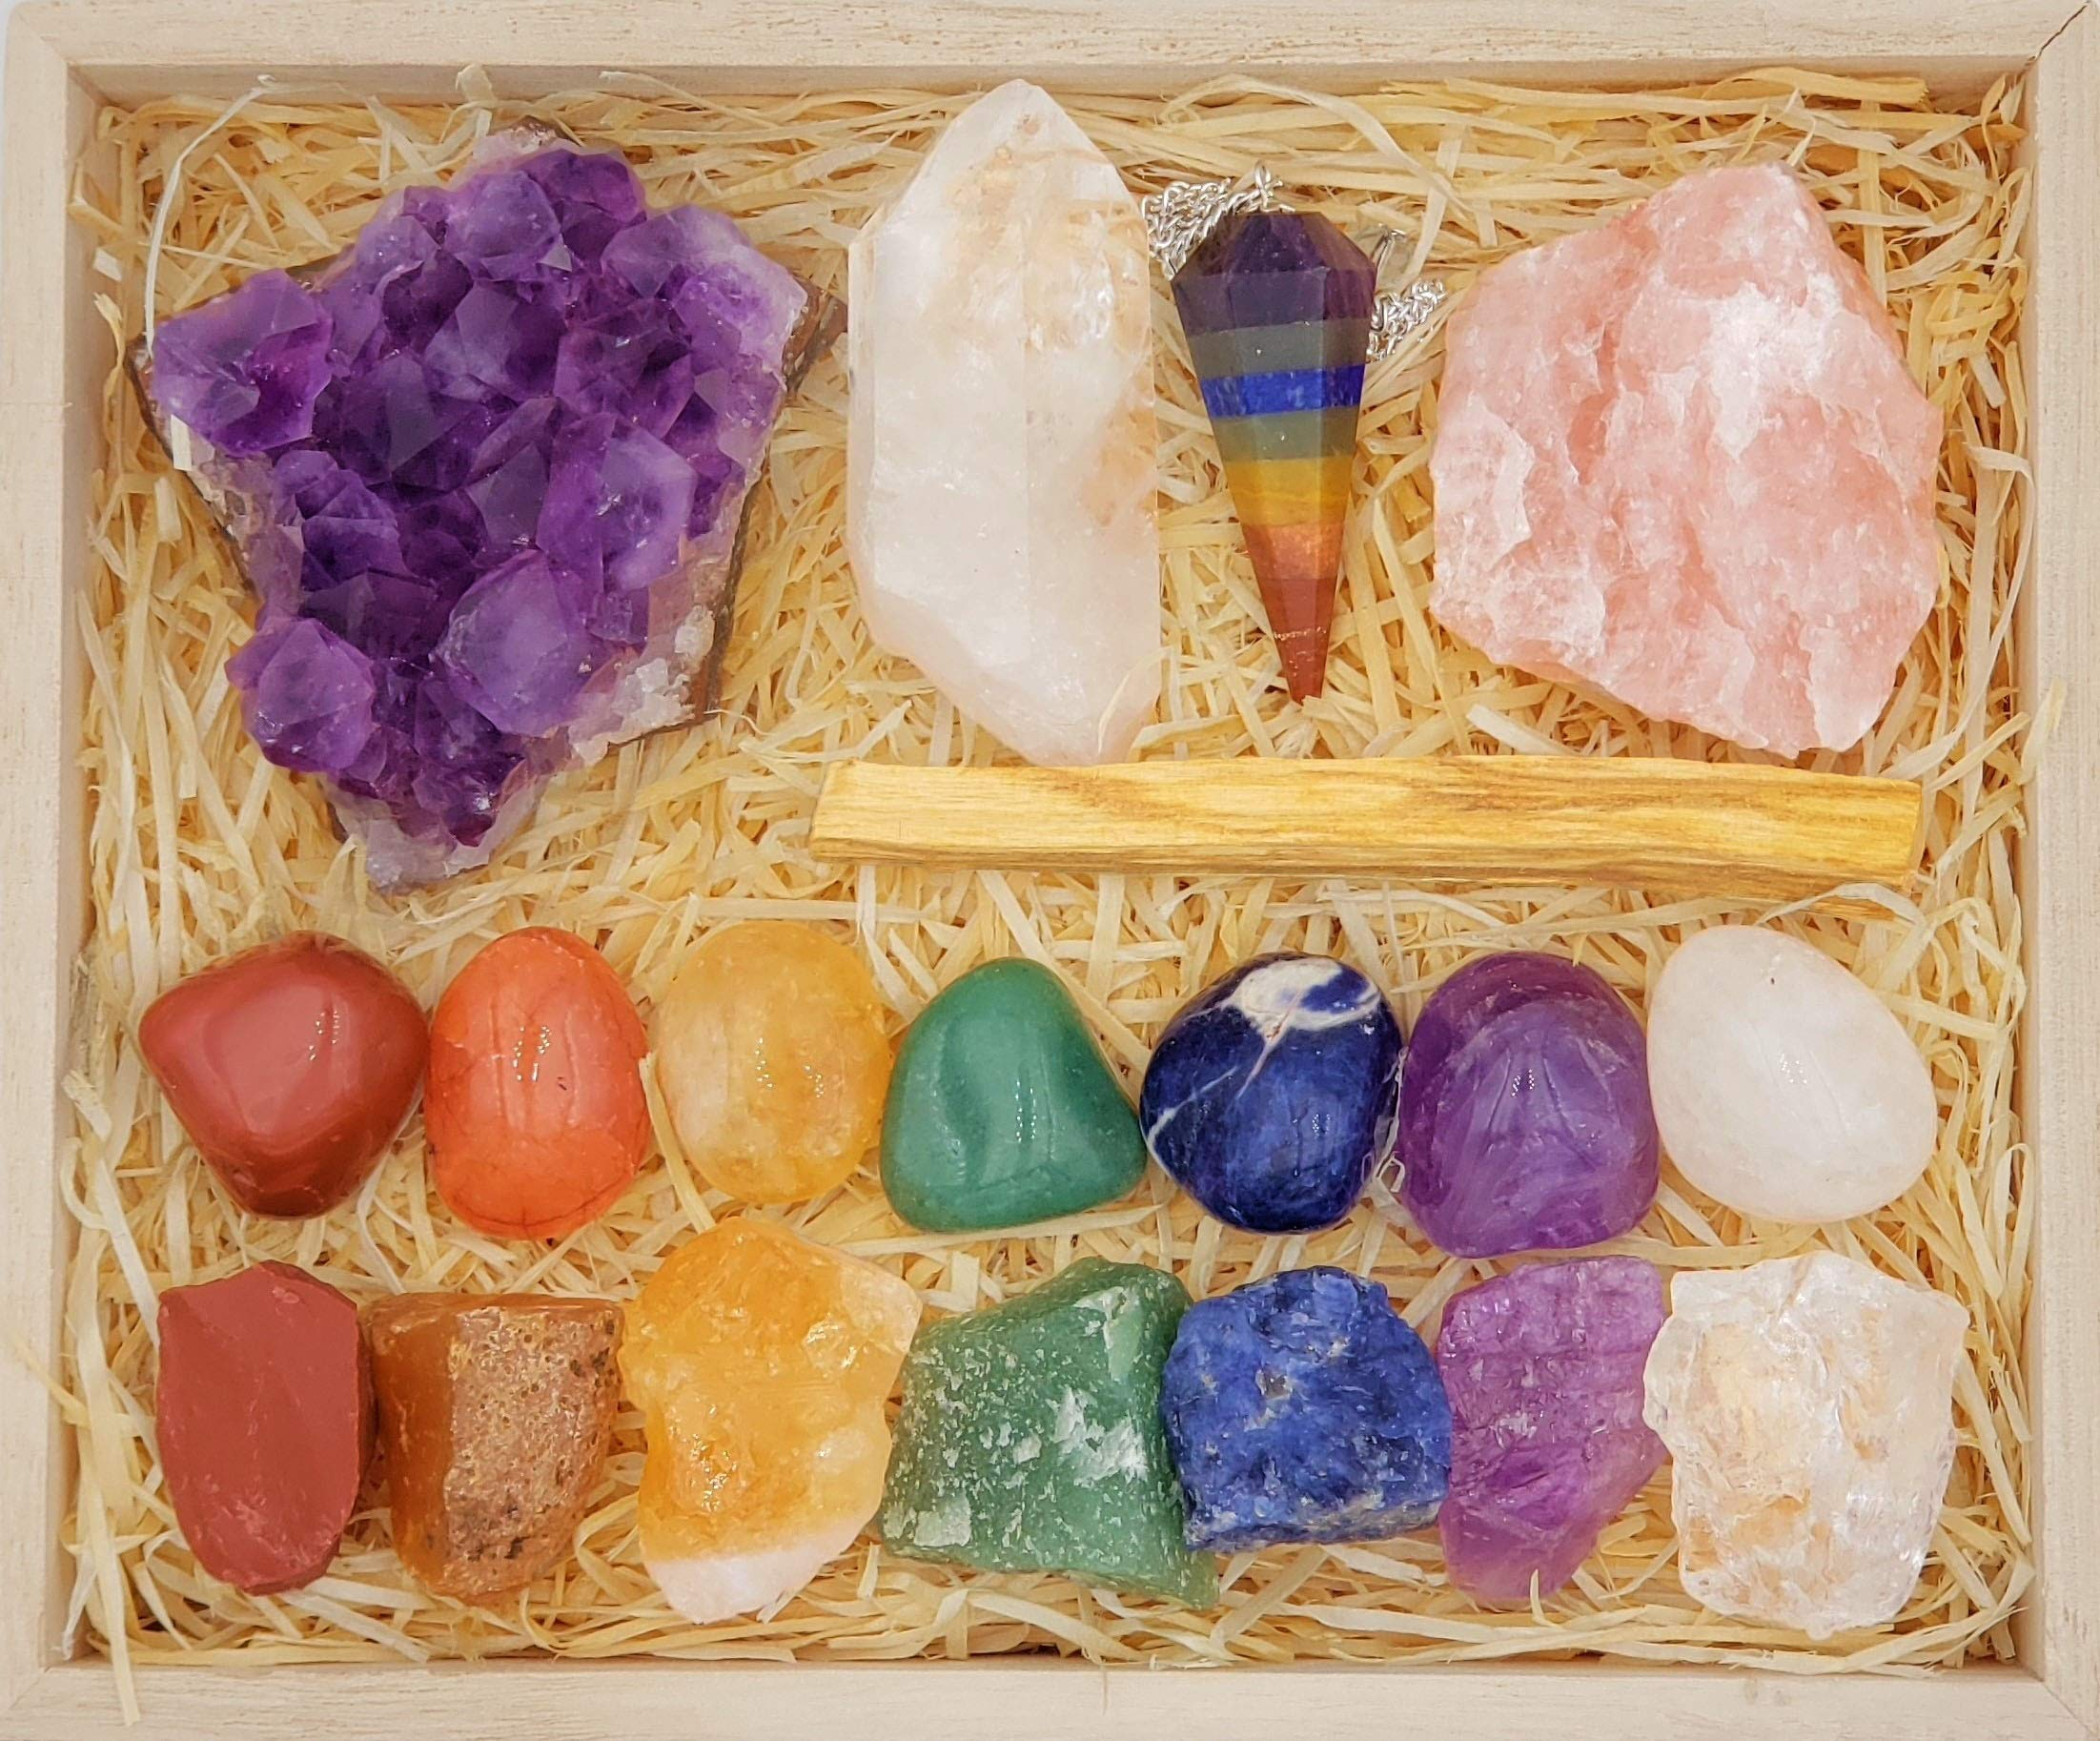 Premium Healing Crystals Chakra Gift Kit in Wooden Box - 7 Chakra Set Stones, E-Book, 20x6 Reference Guide Poster, Gift Ready (Deluxe Chakra Collection) by Zatny